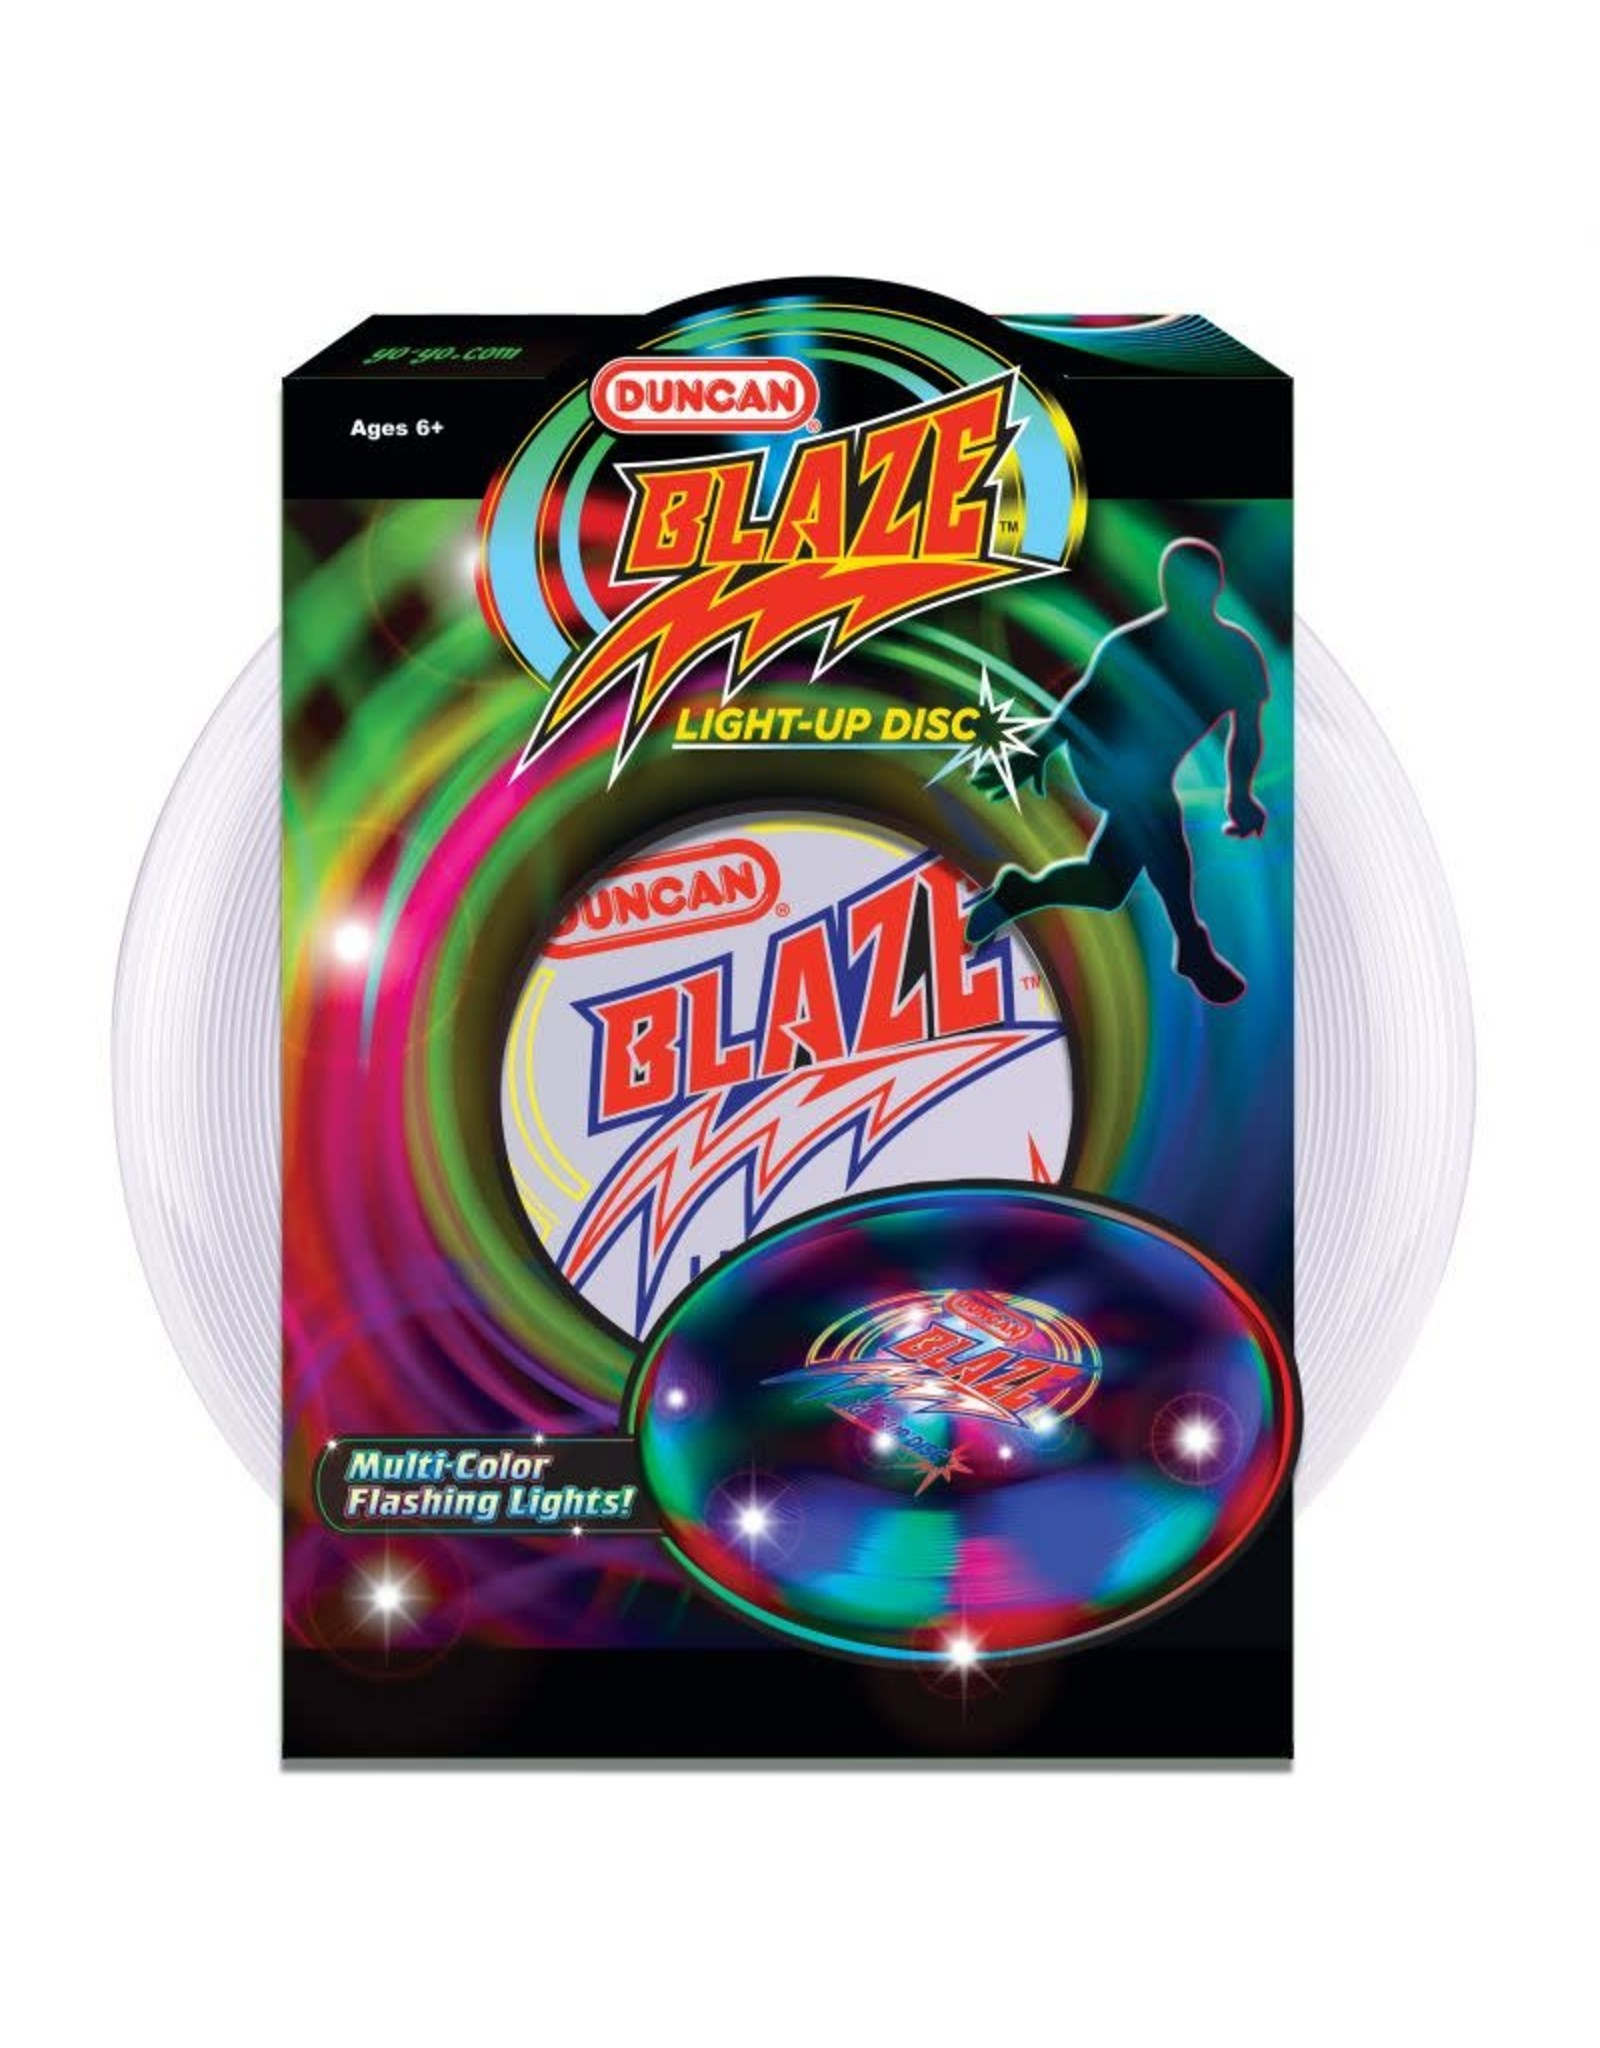 Duncan Blaze Light-Up Flying Disc